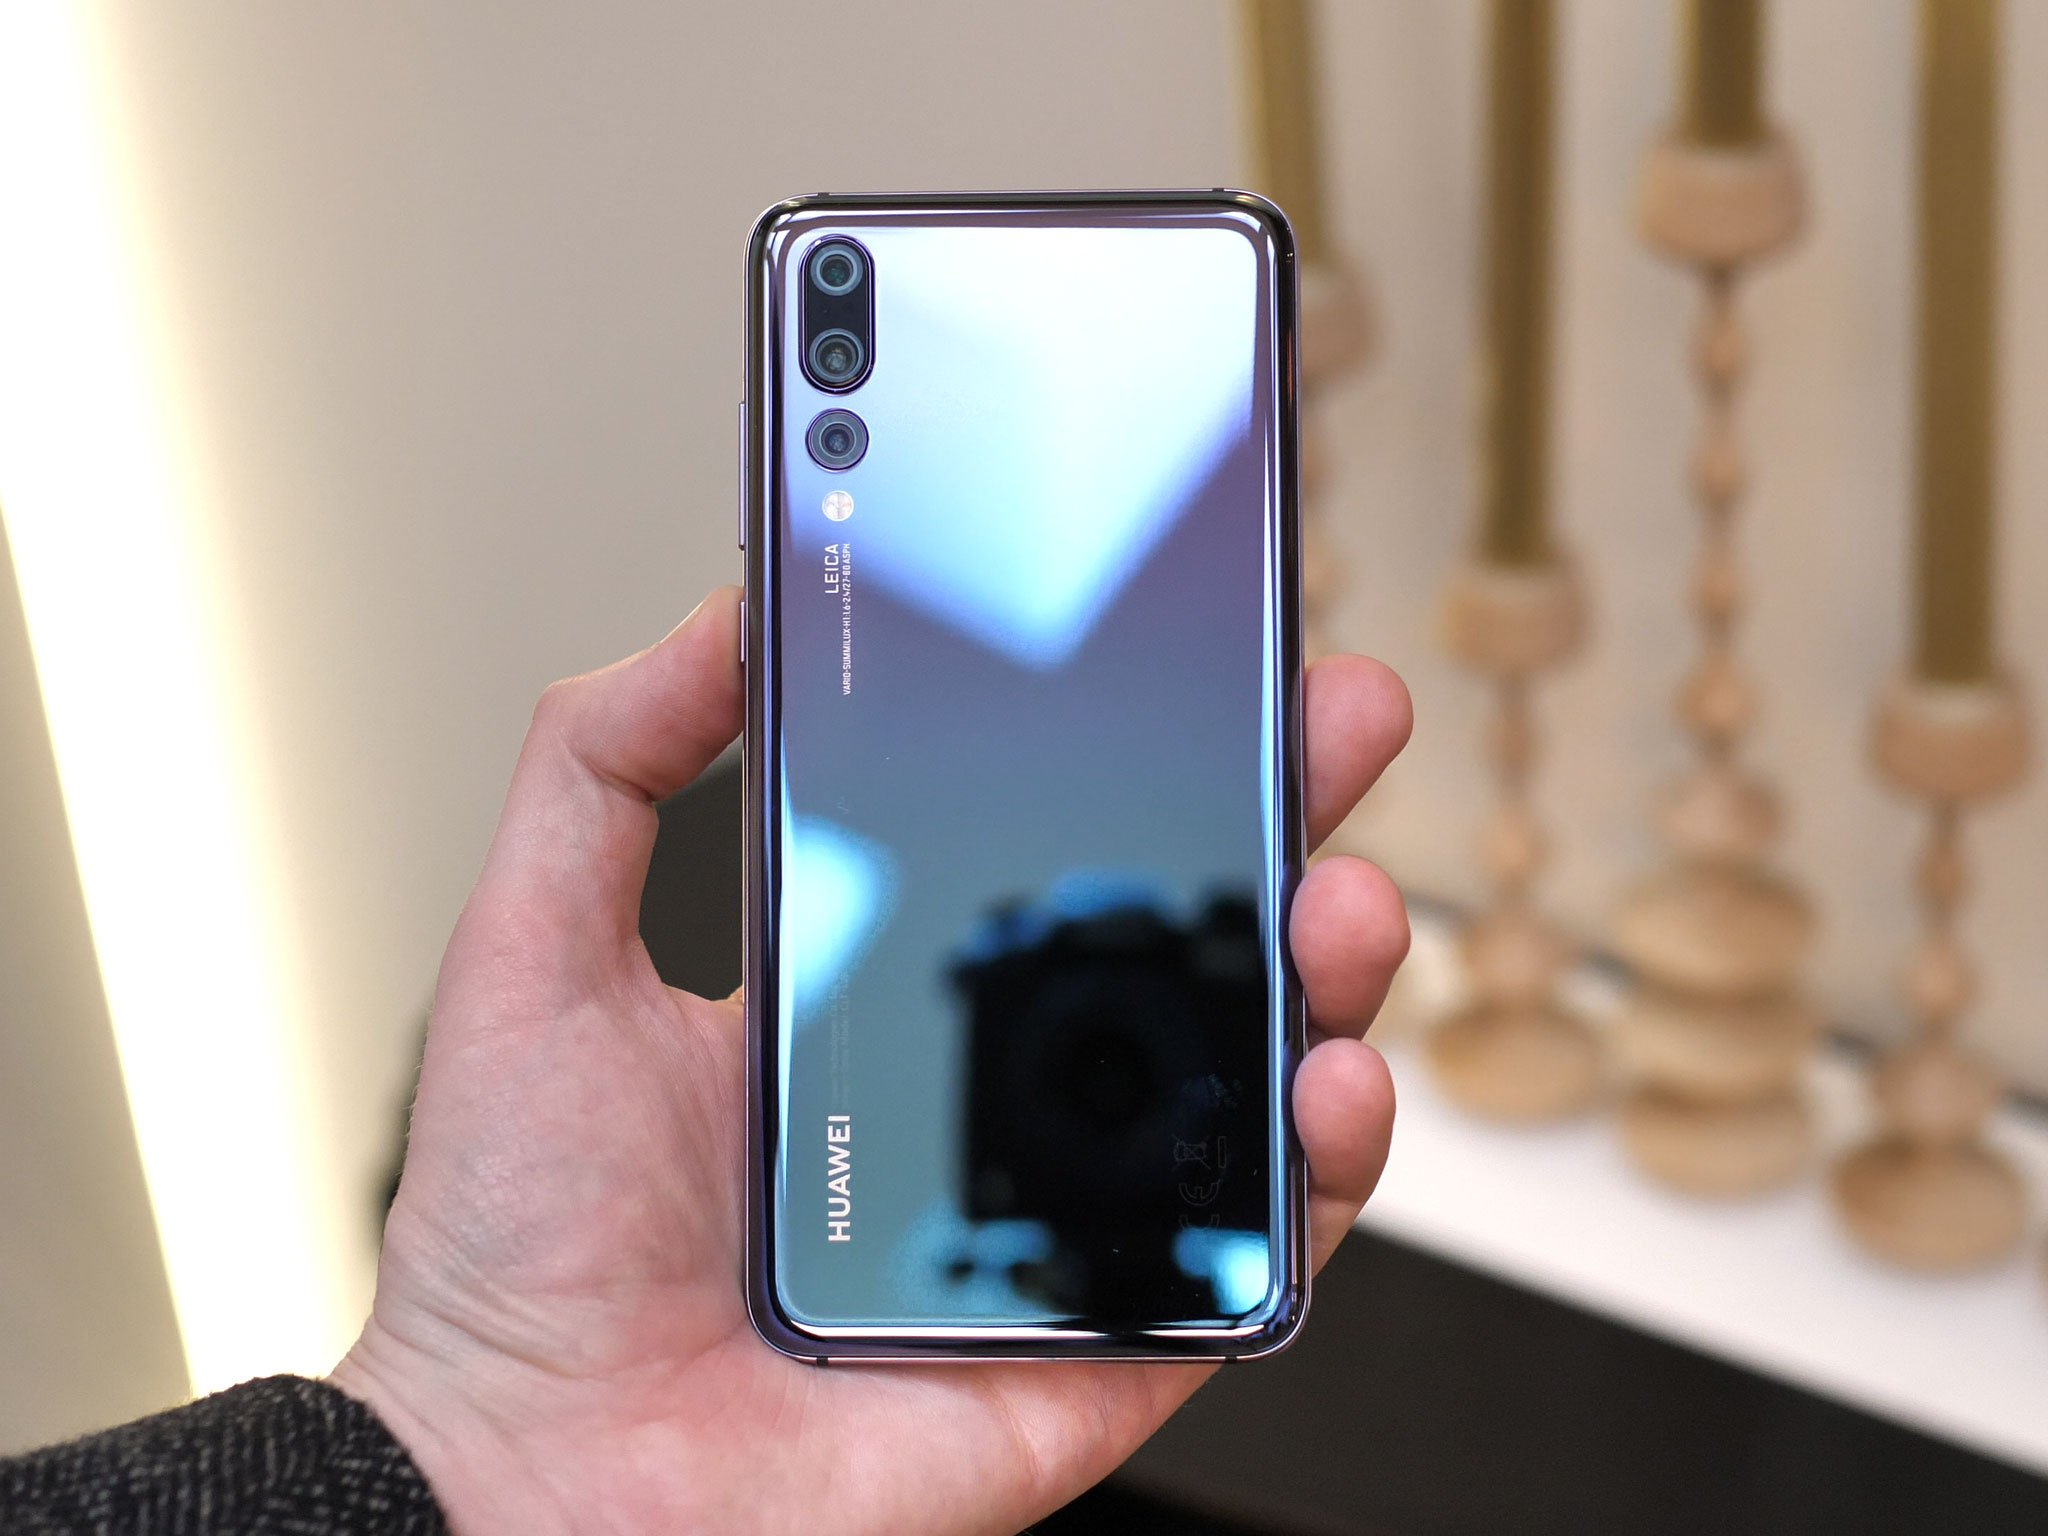 Black Friday Rogers Mobile Where To Buy The Huawei P20 Pro In The U S And Canada Android